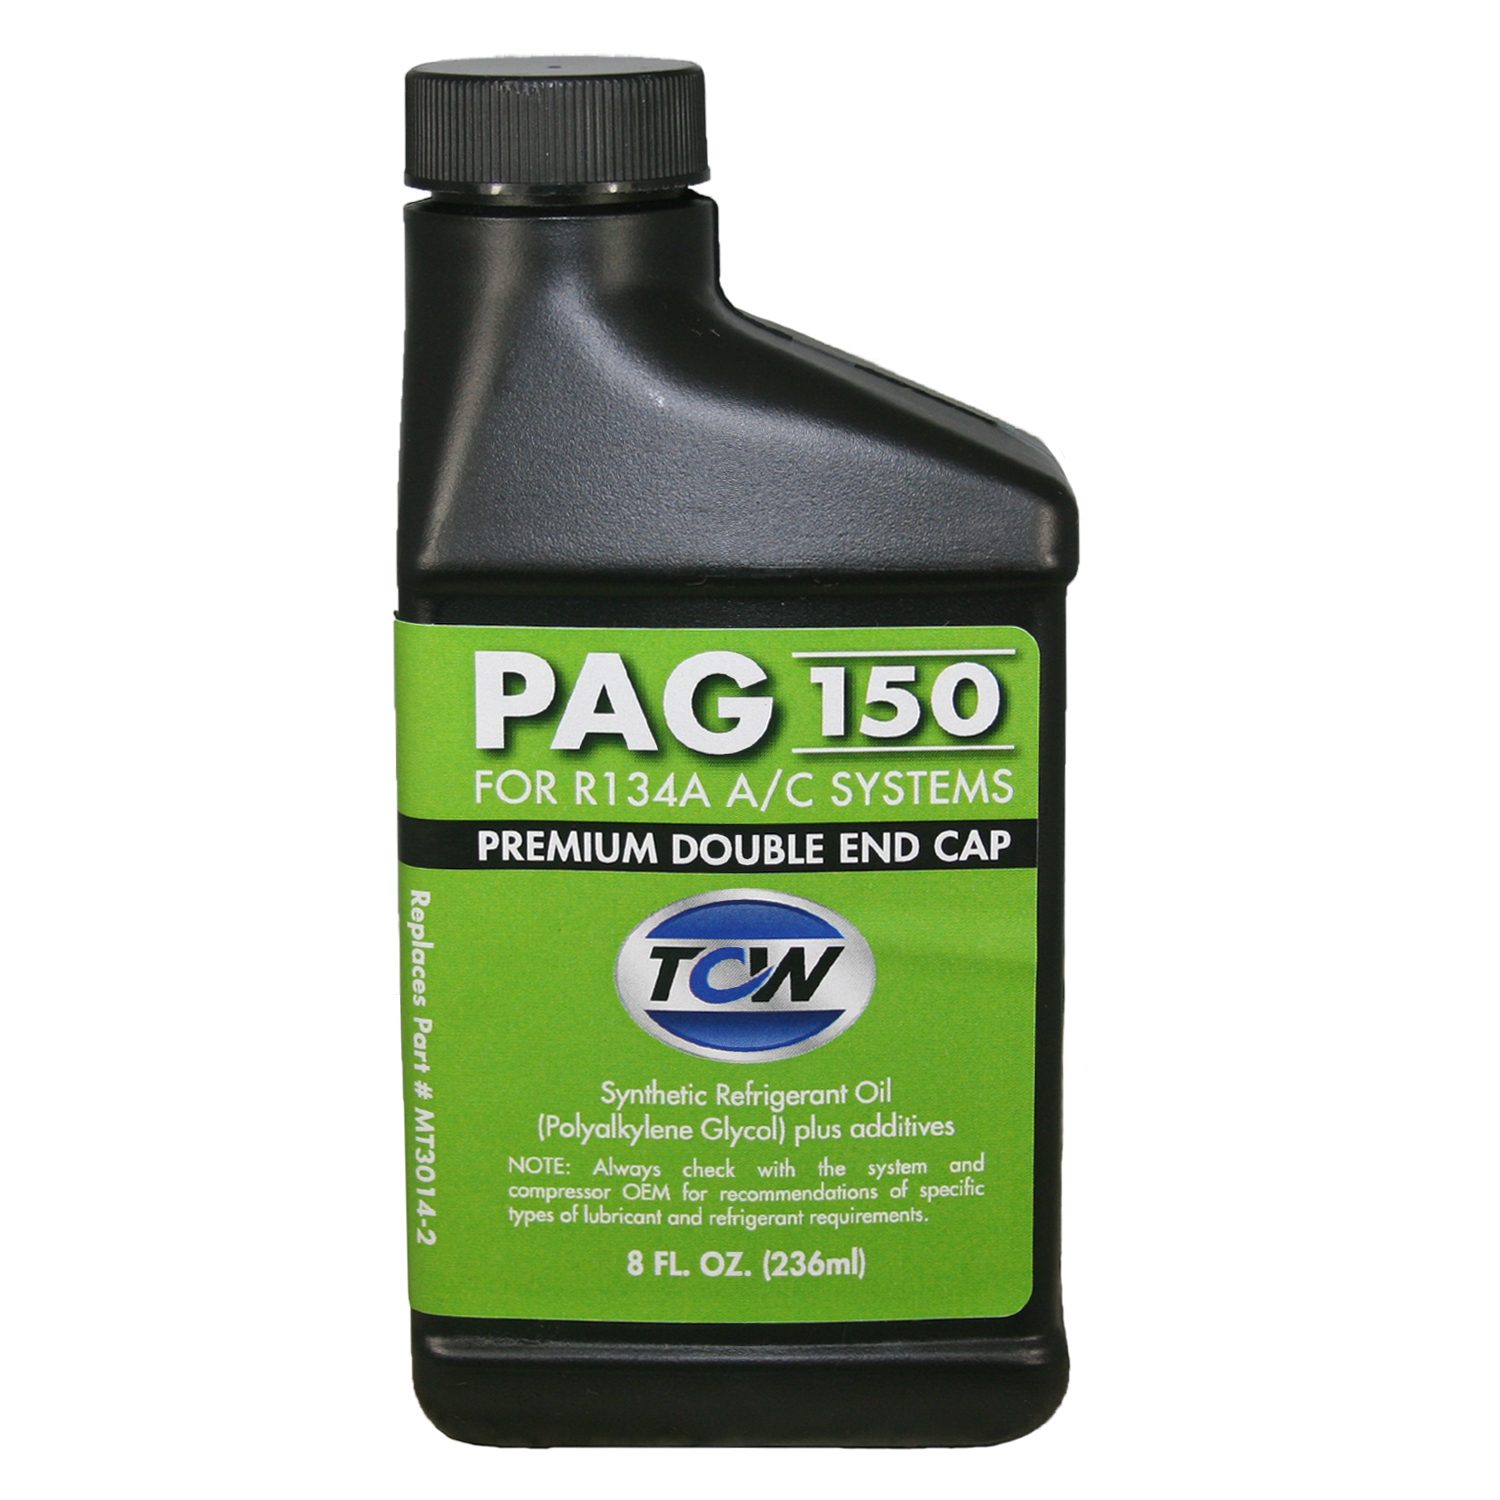 TCW Compressor Oil MT3014-1 Double-End Capped PAG